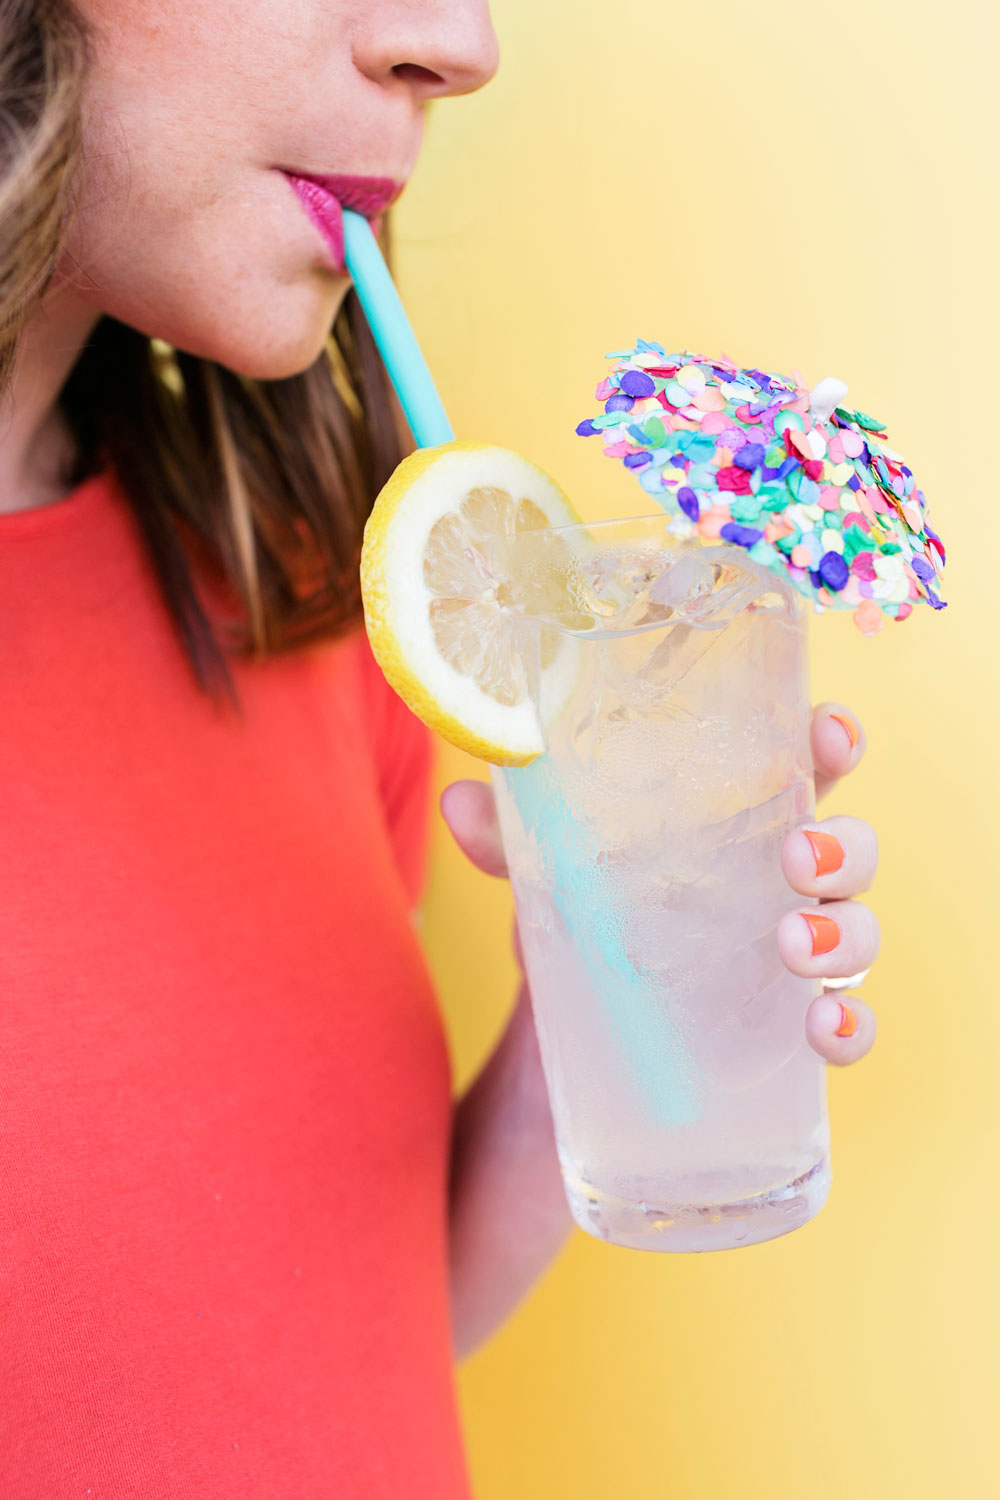 A-fun-and-easy-DIY-to-spice-up-any-drink